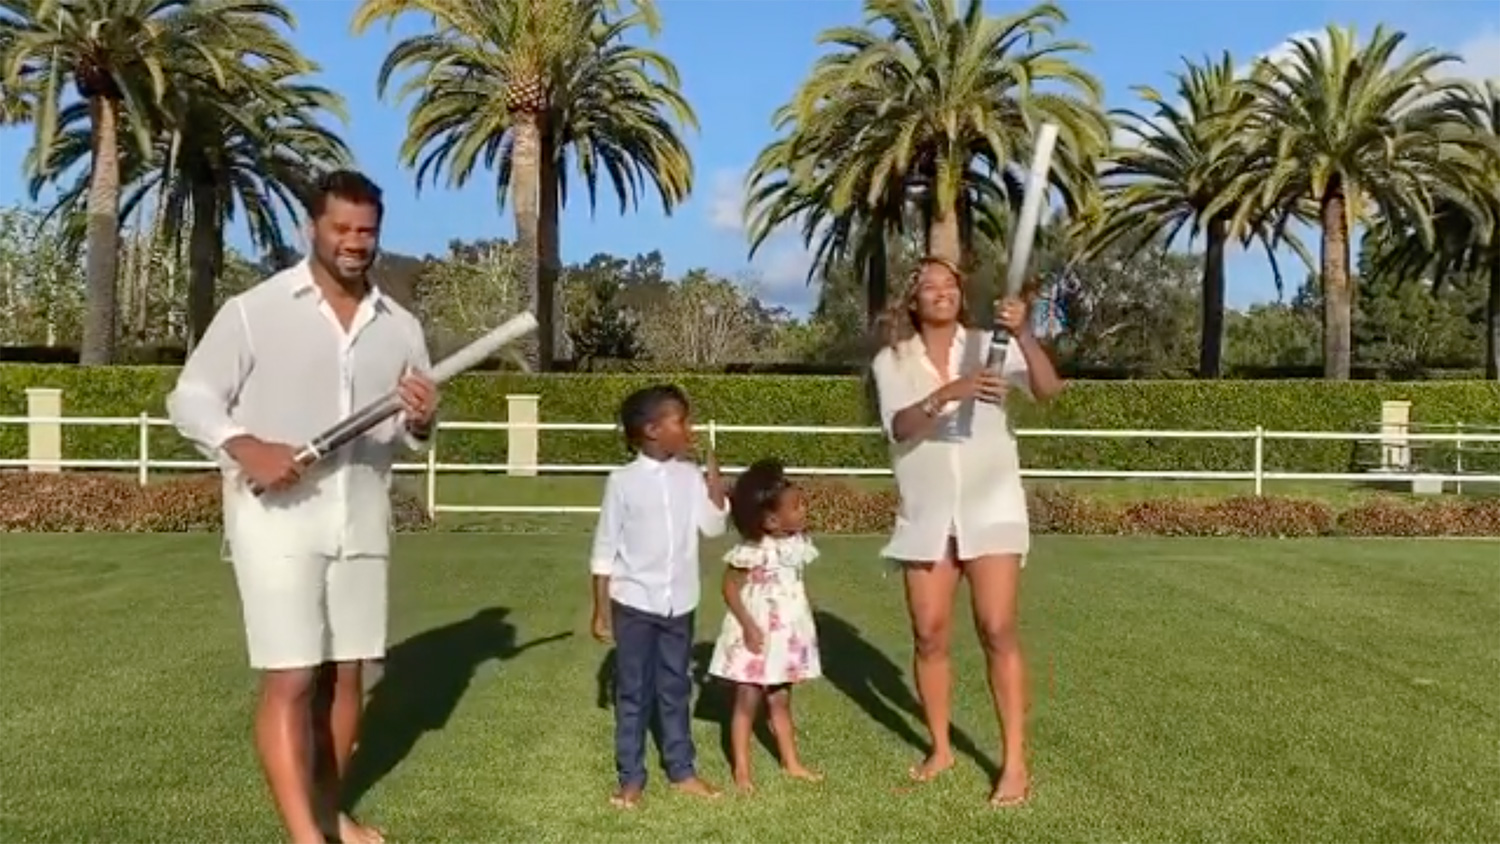 Russell Wilson and Ciara family photos